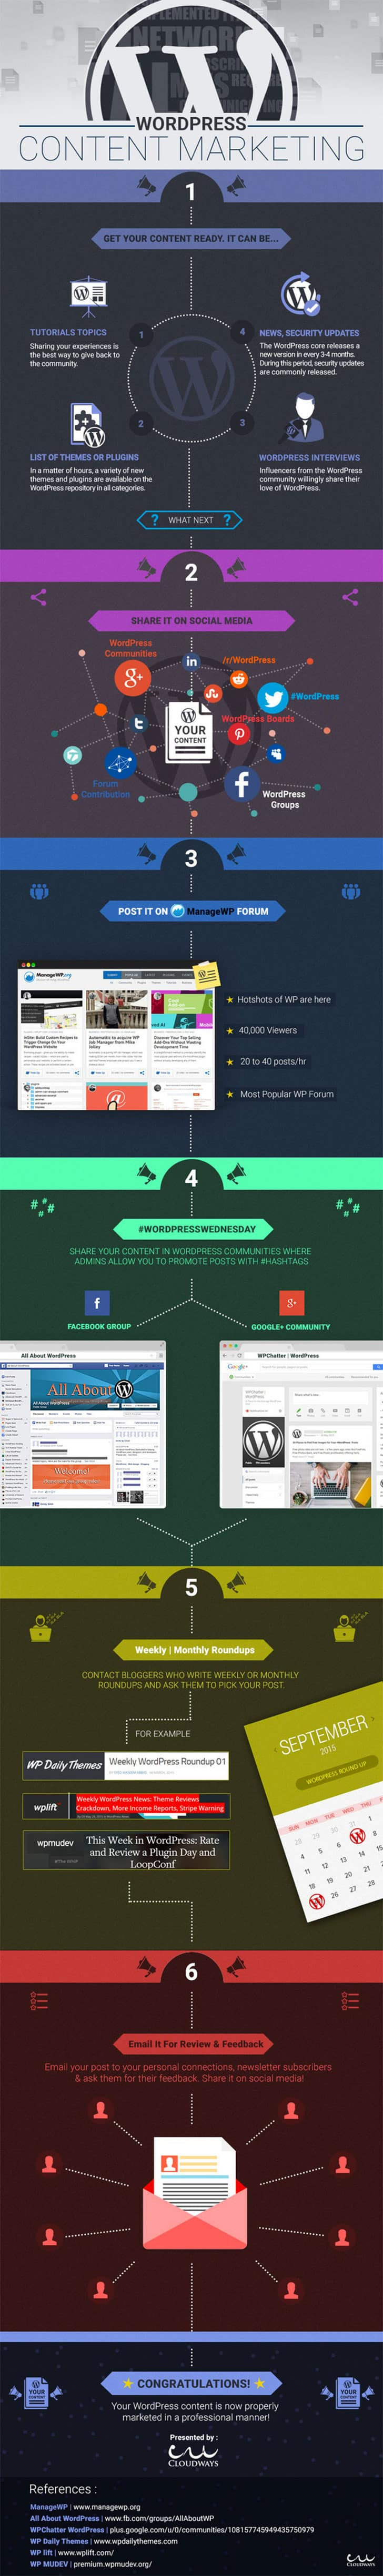 wordpress-content-marketing-infographic